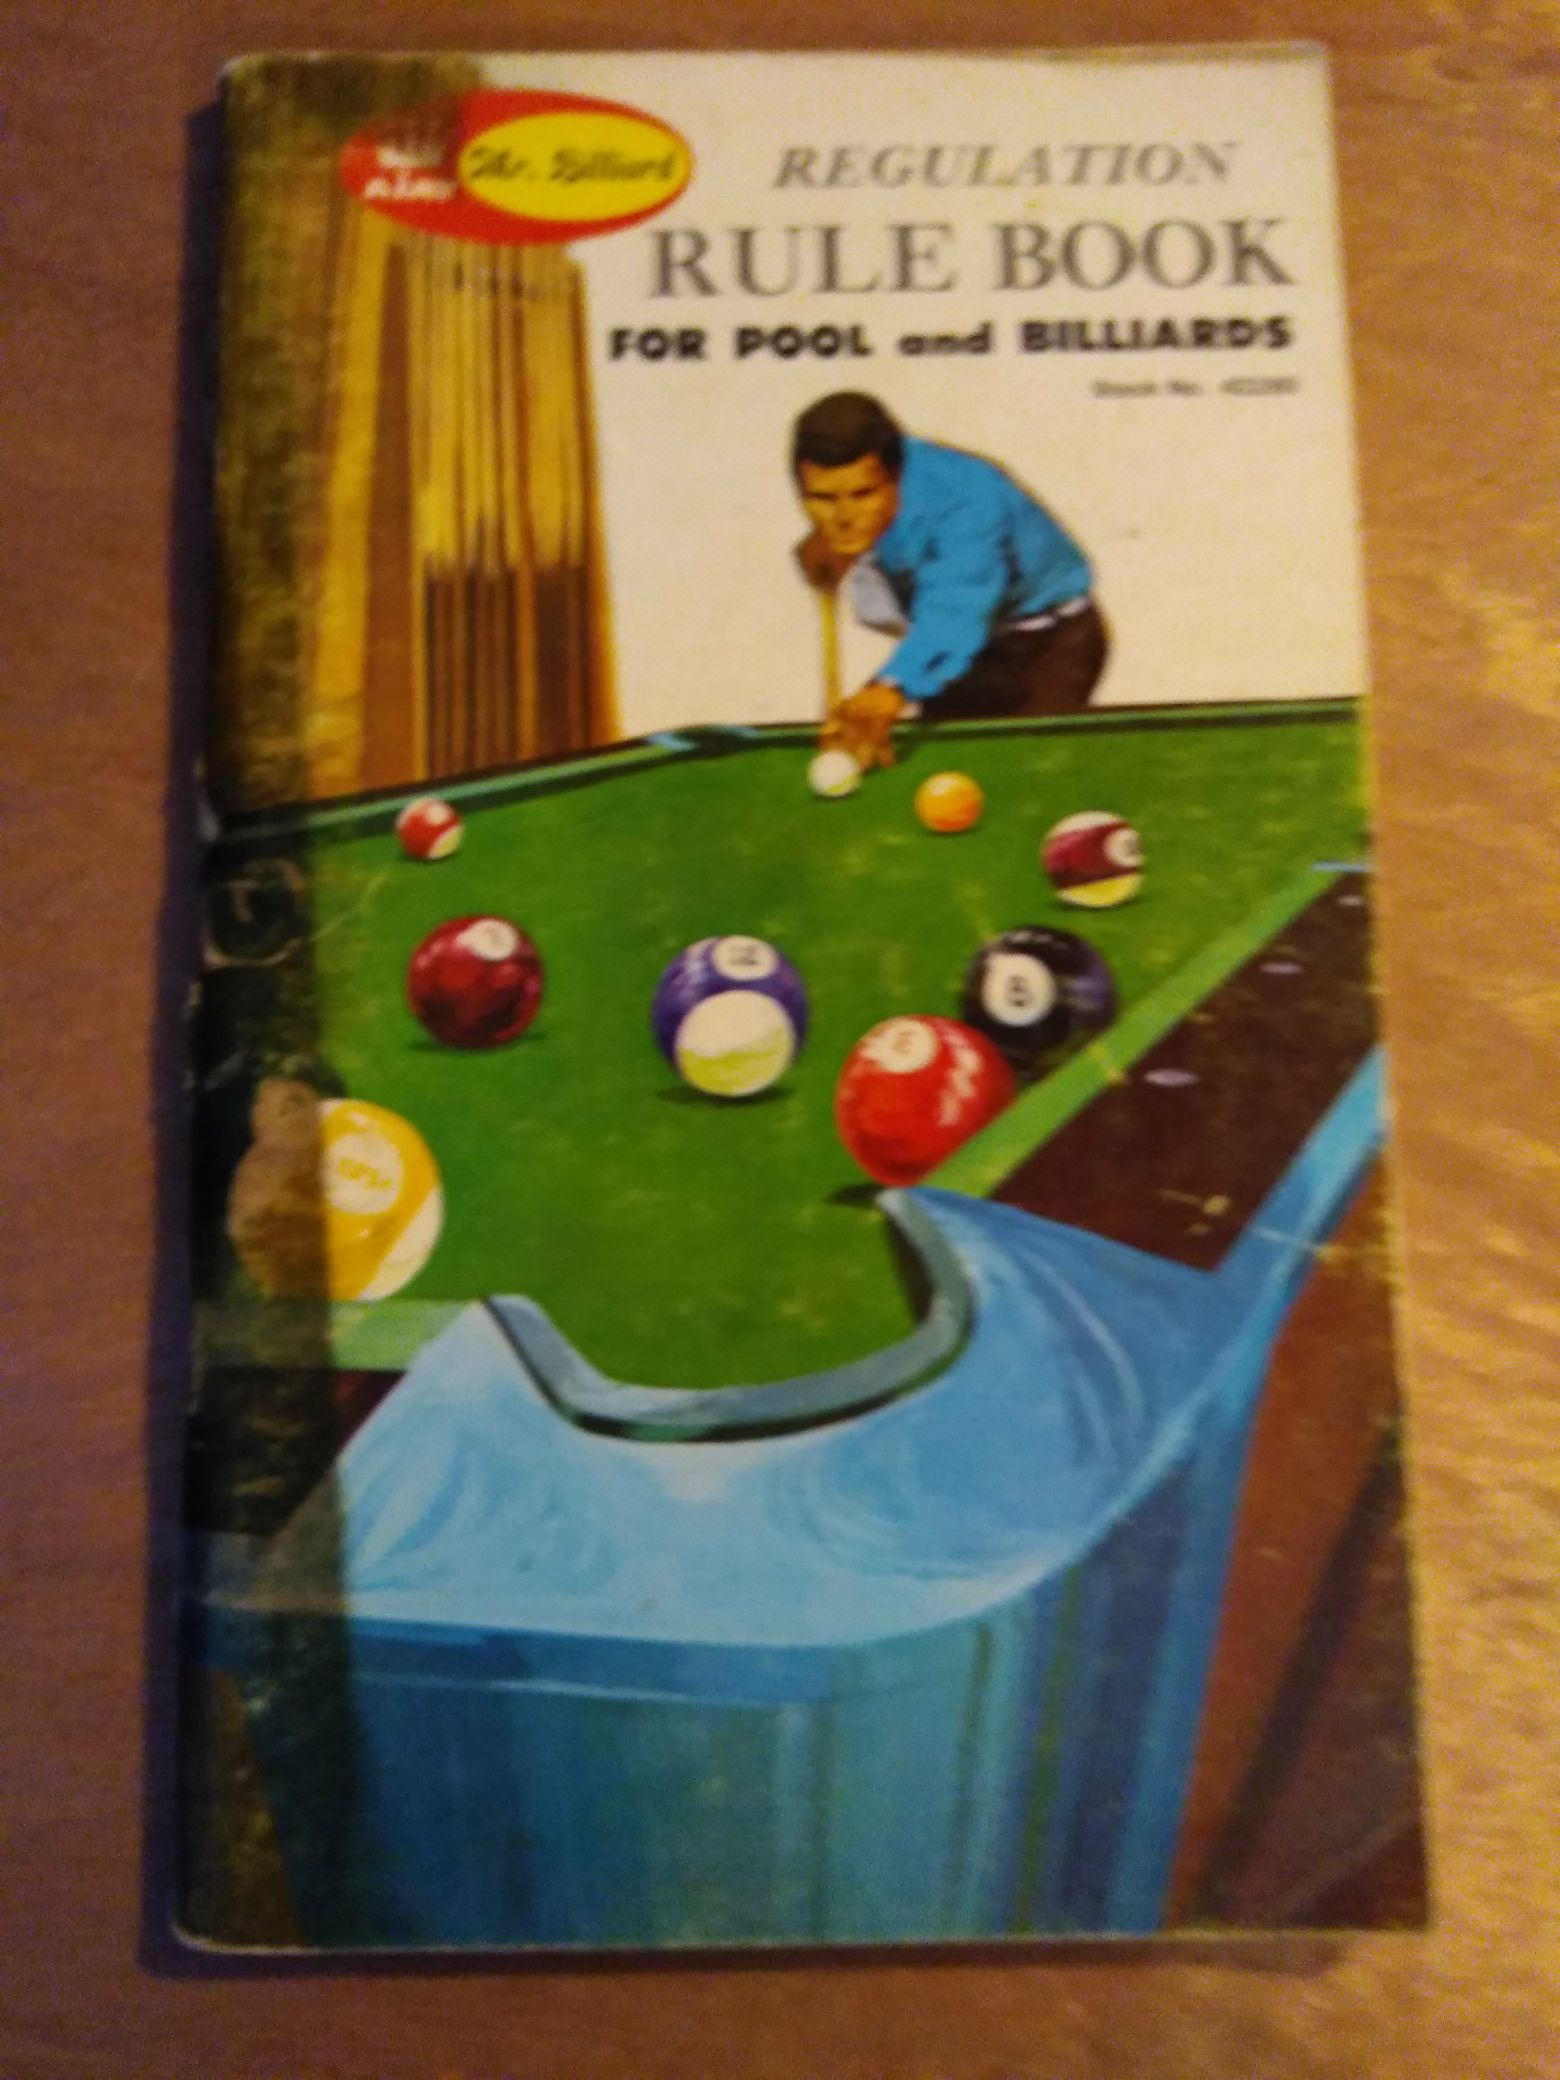 Regulation Rule Book For Pool And Billiards -  cover